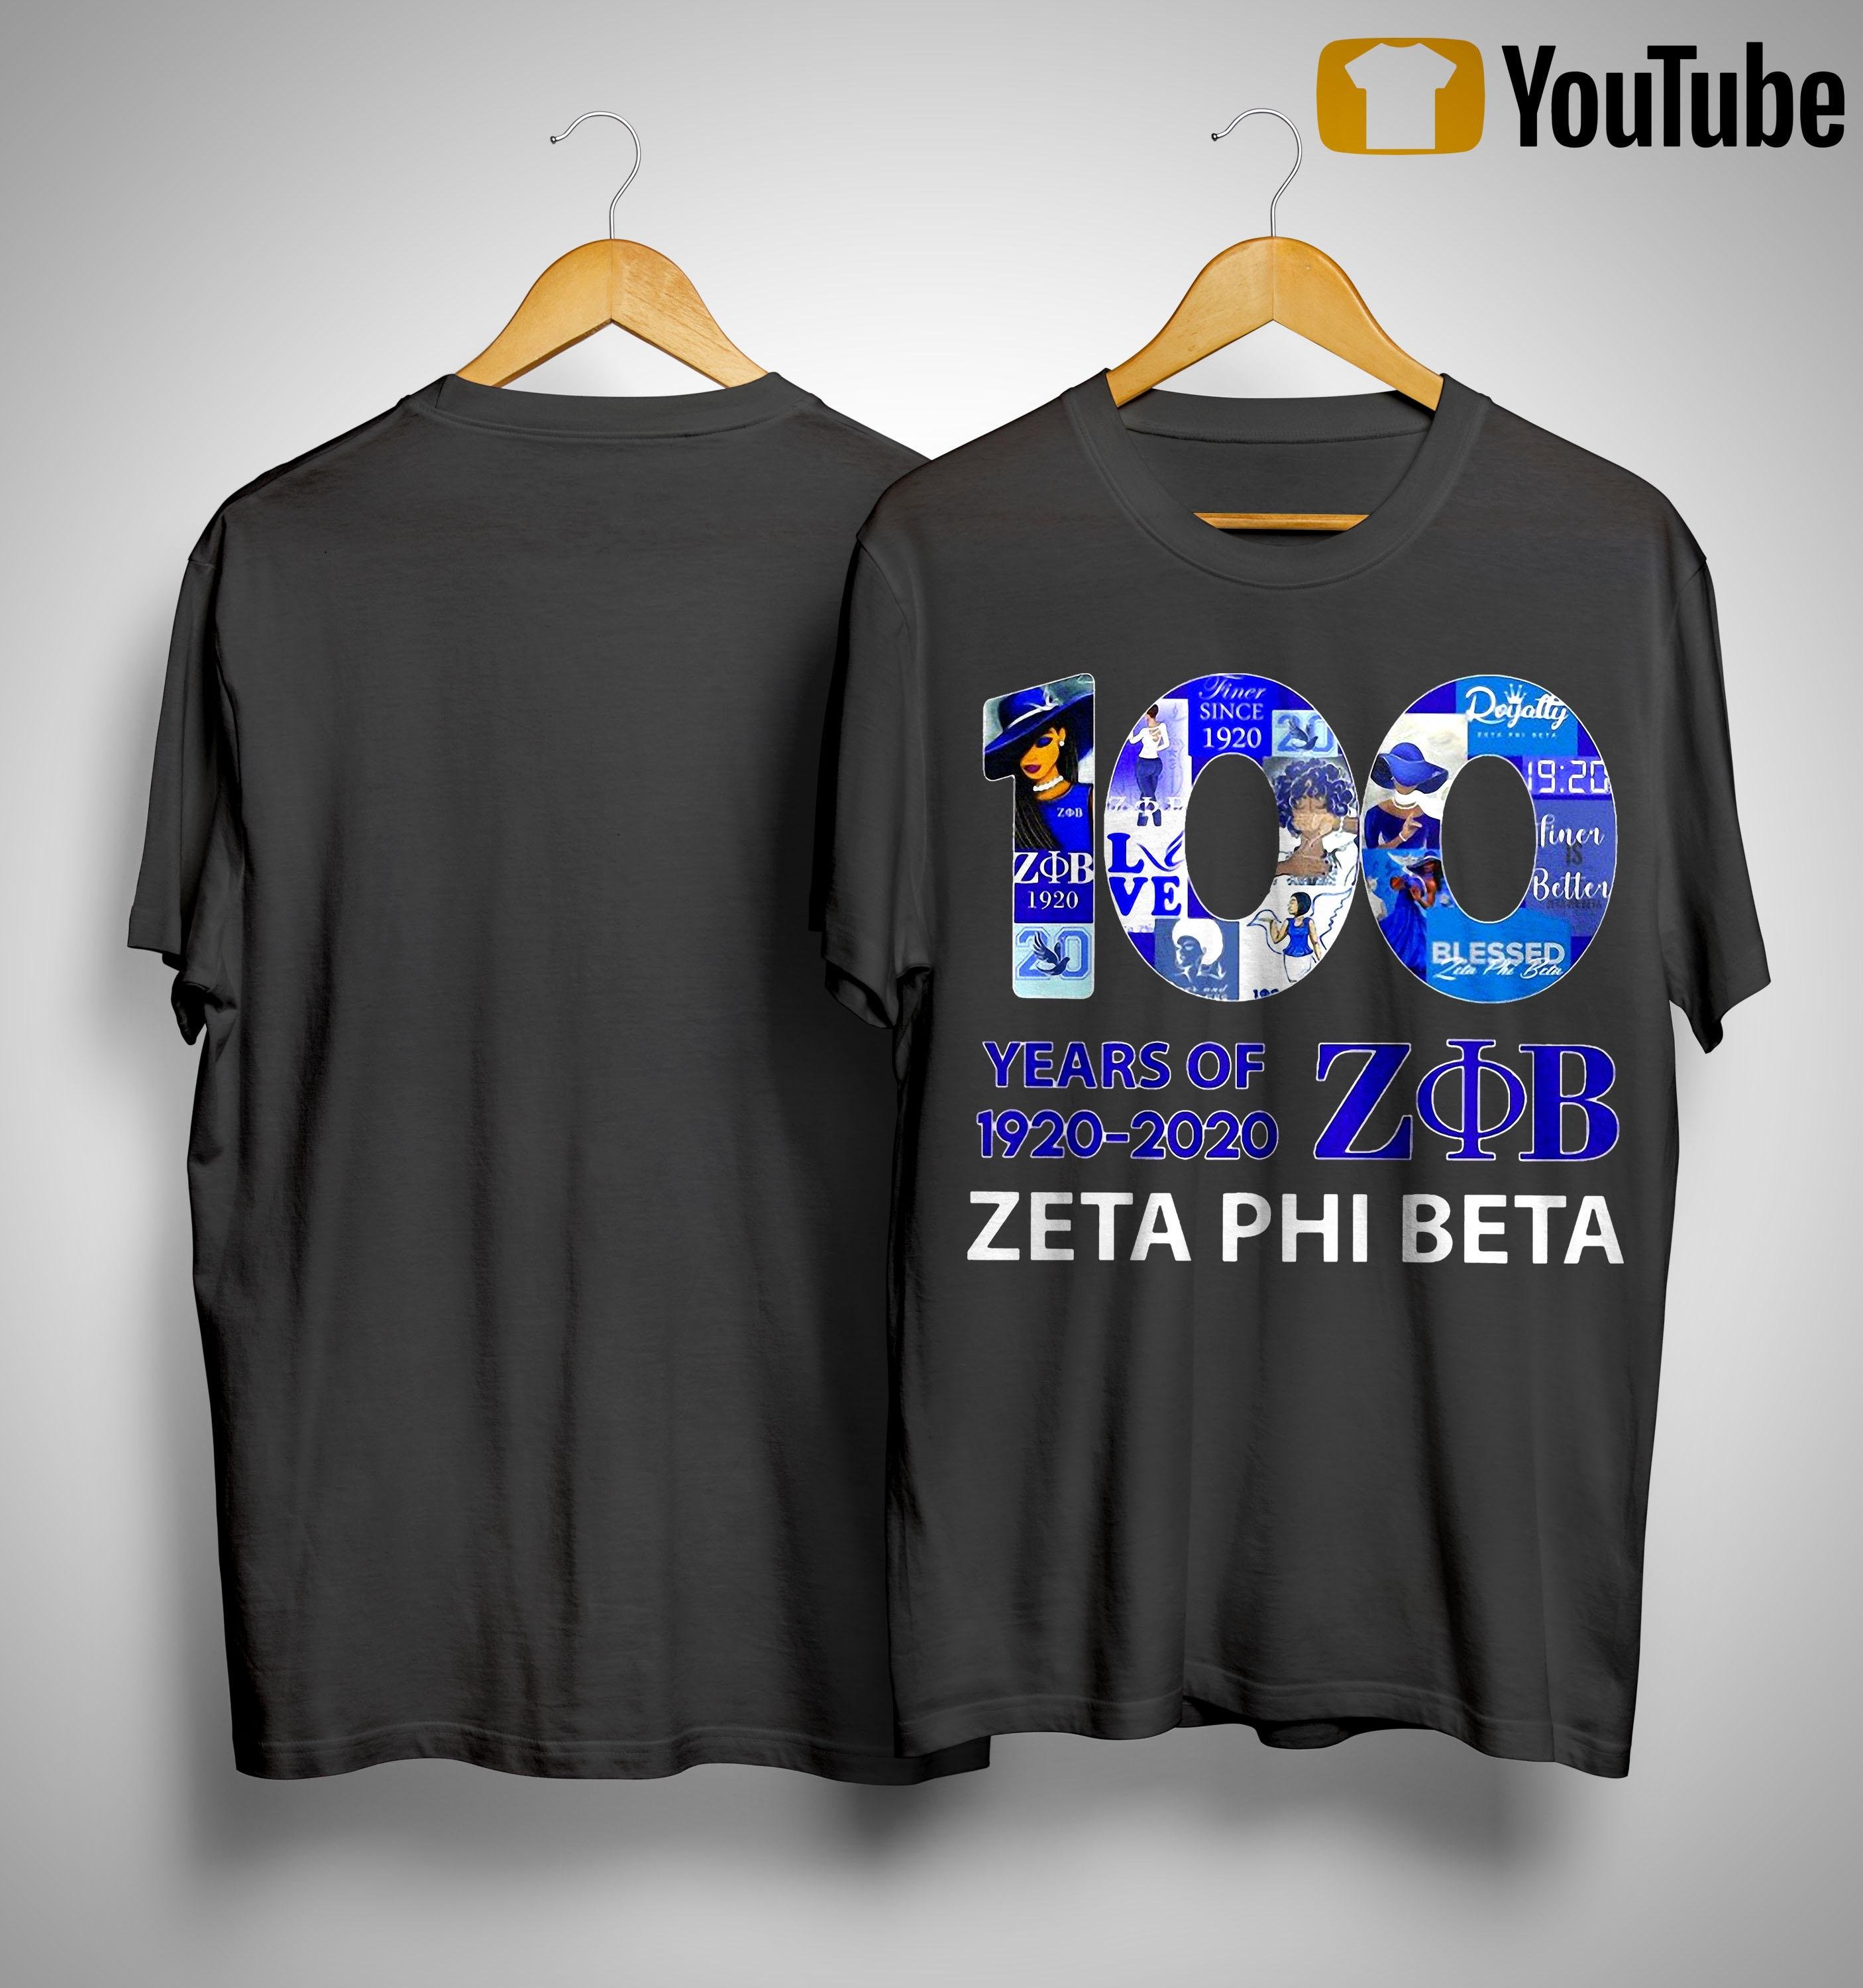 100 Years Of 1920 2020 Zob Zeta Phi Beta Shirt